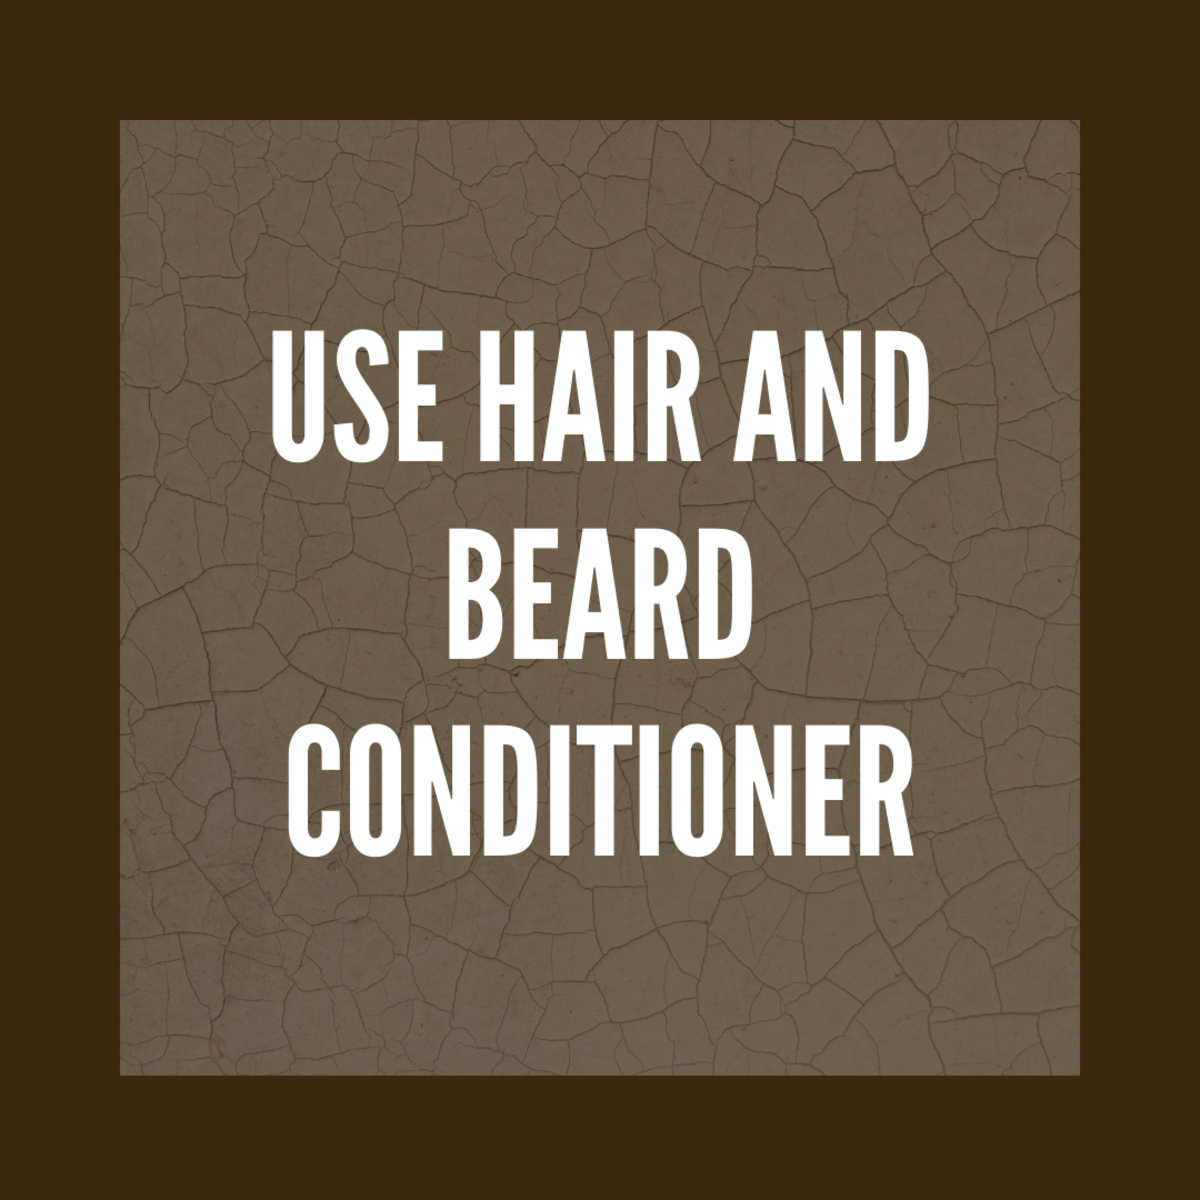 Conditioner will fix dry hair.